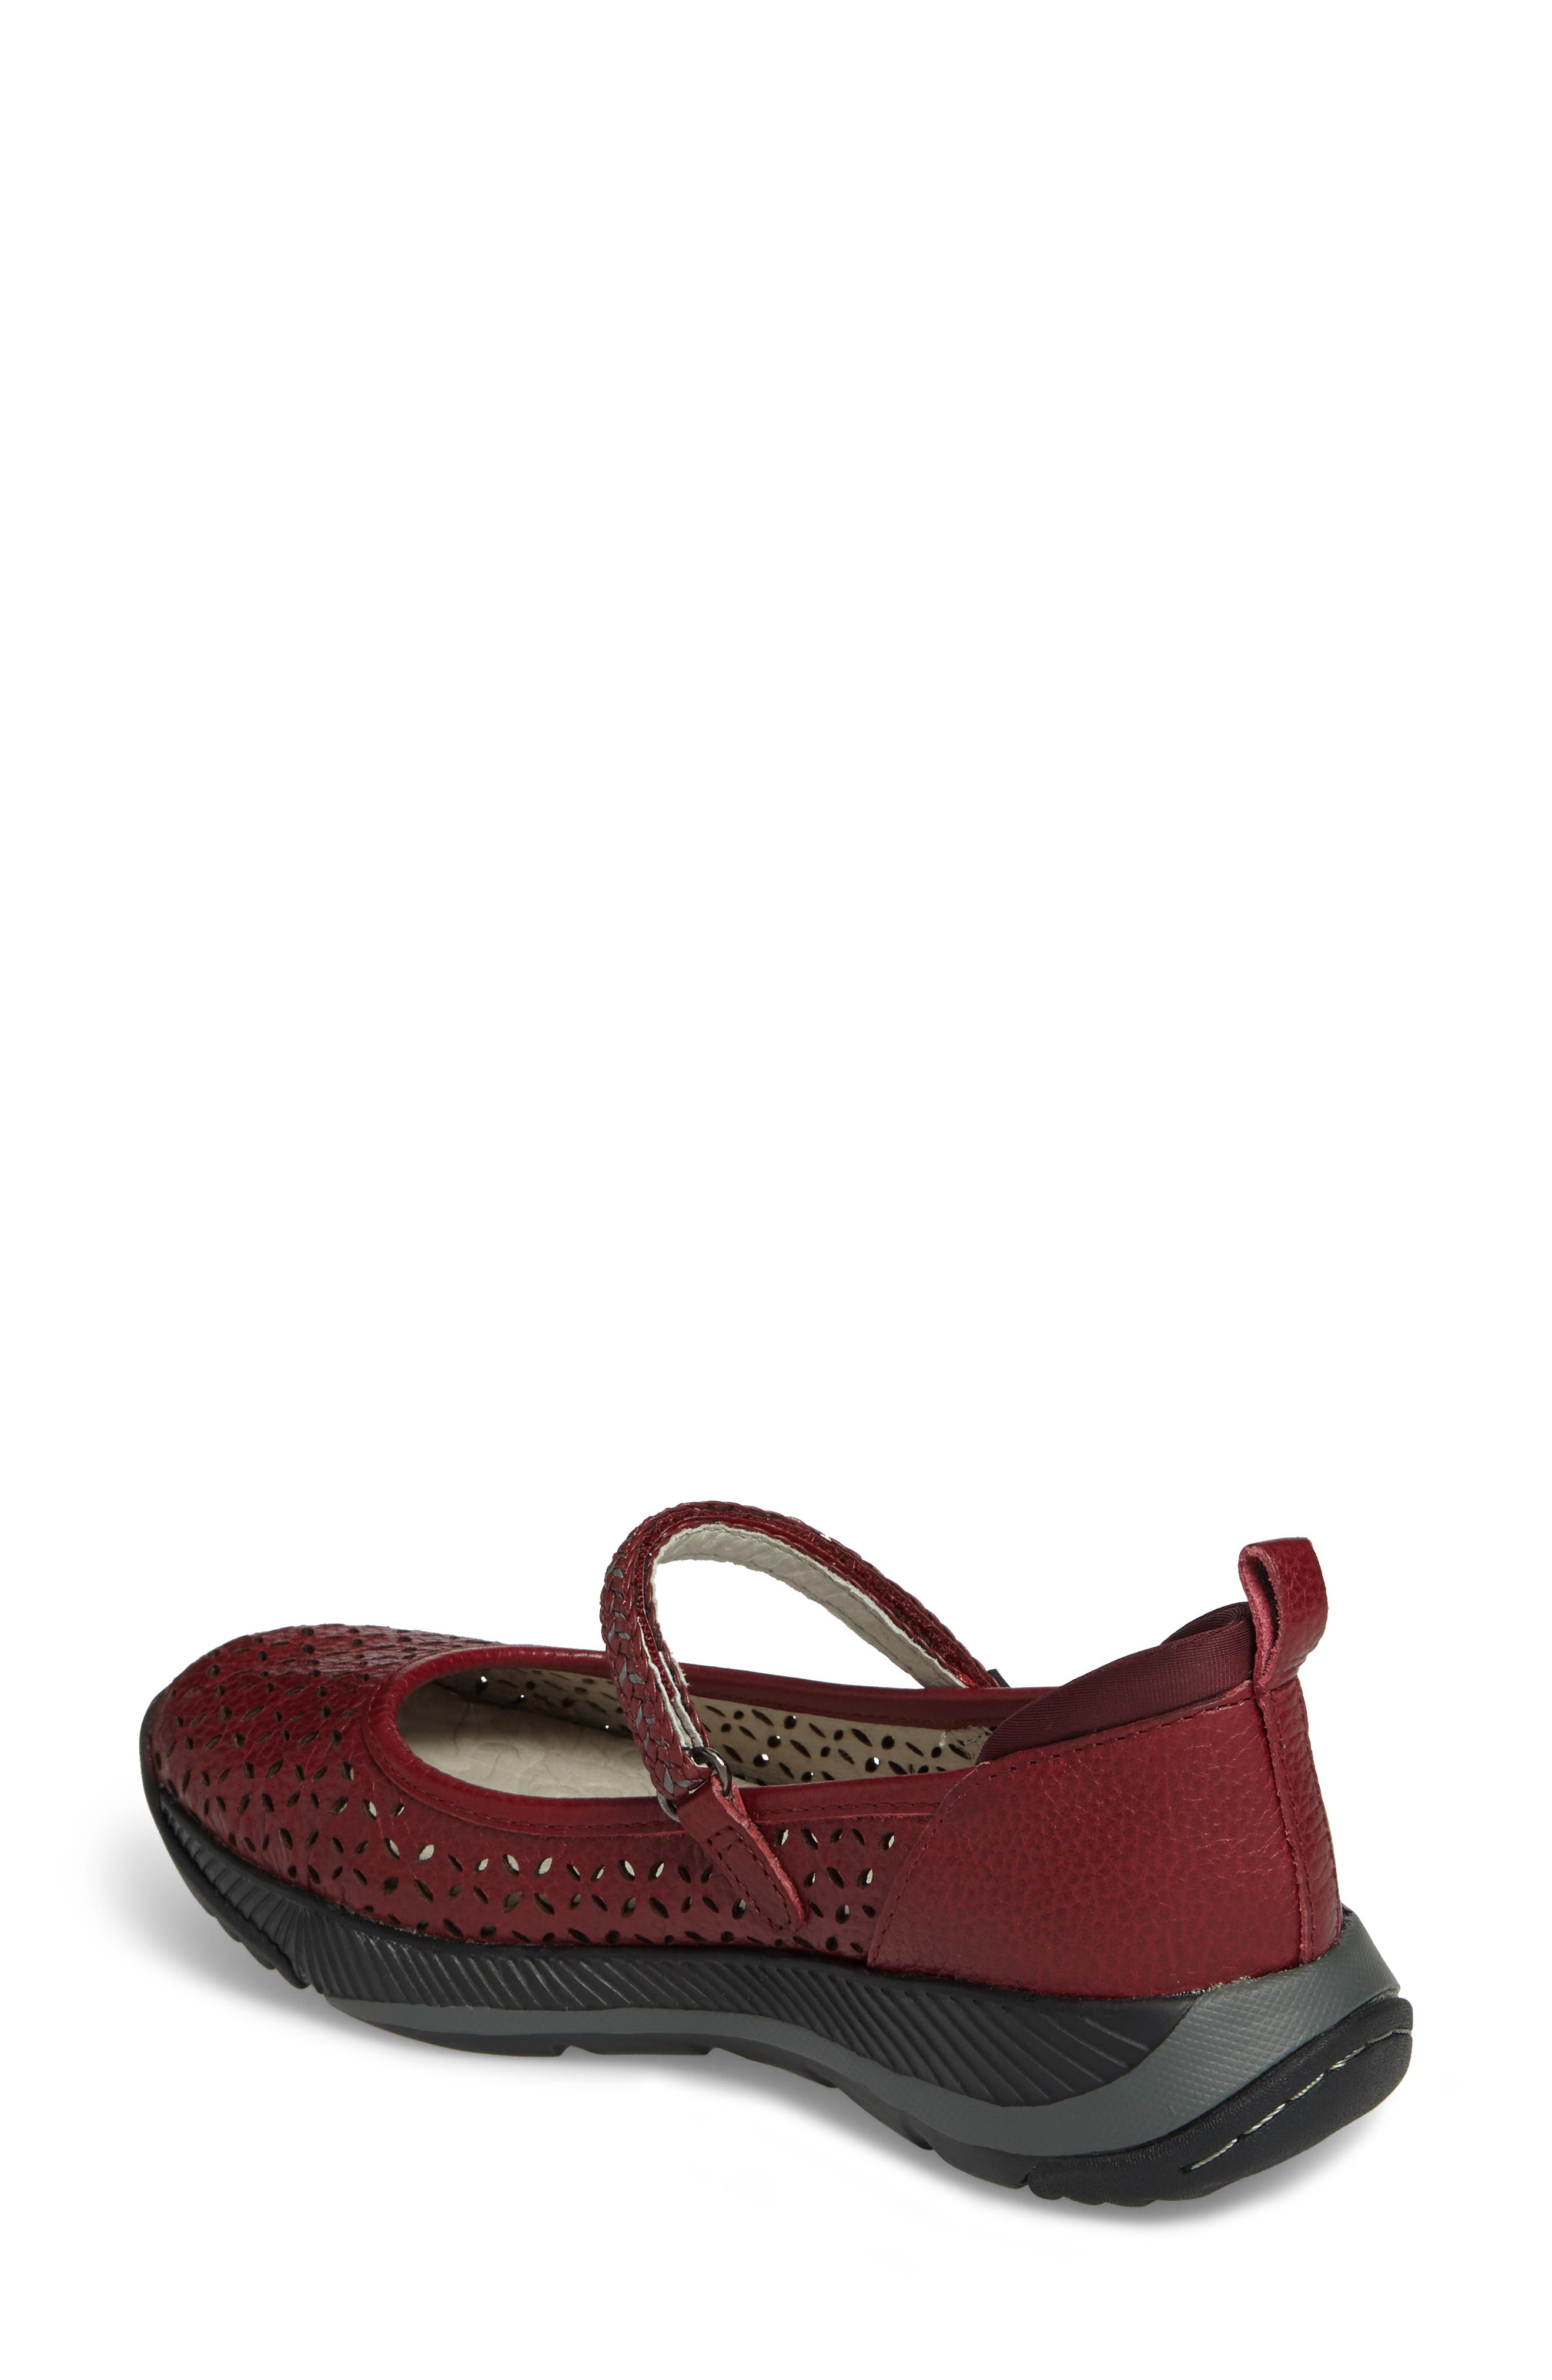 Bailey Perforated Mary Jane Sneaker,                             Alternate thumbnail 7, color,